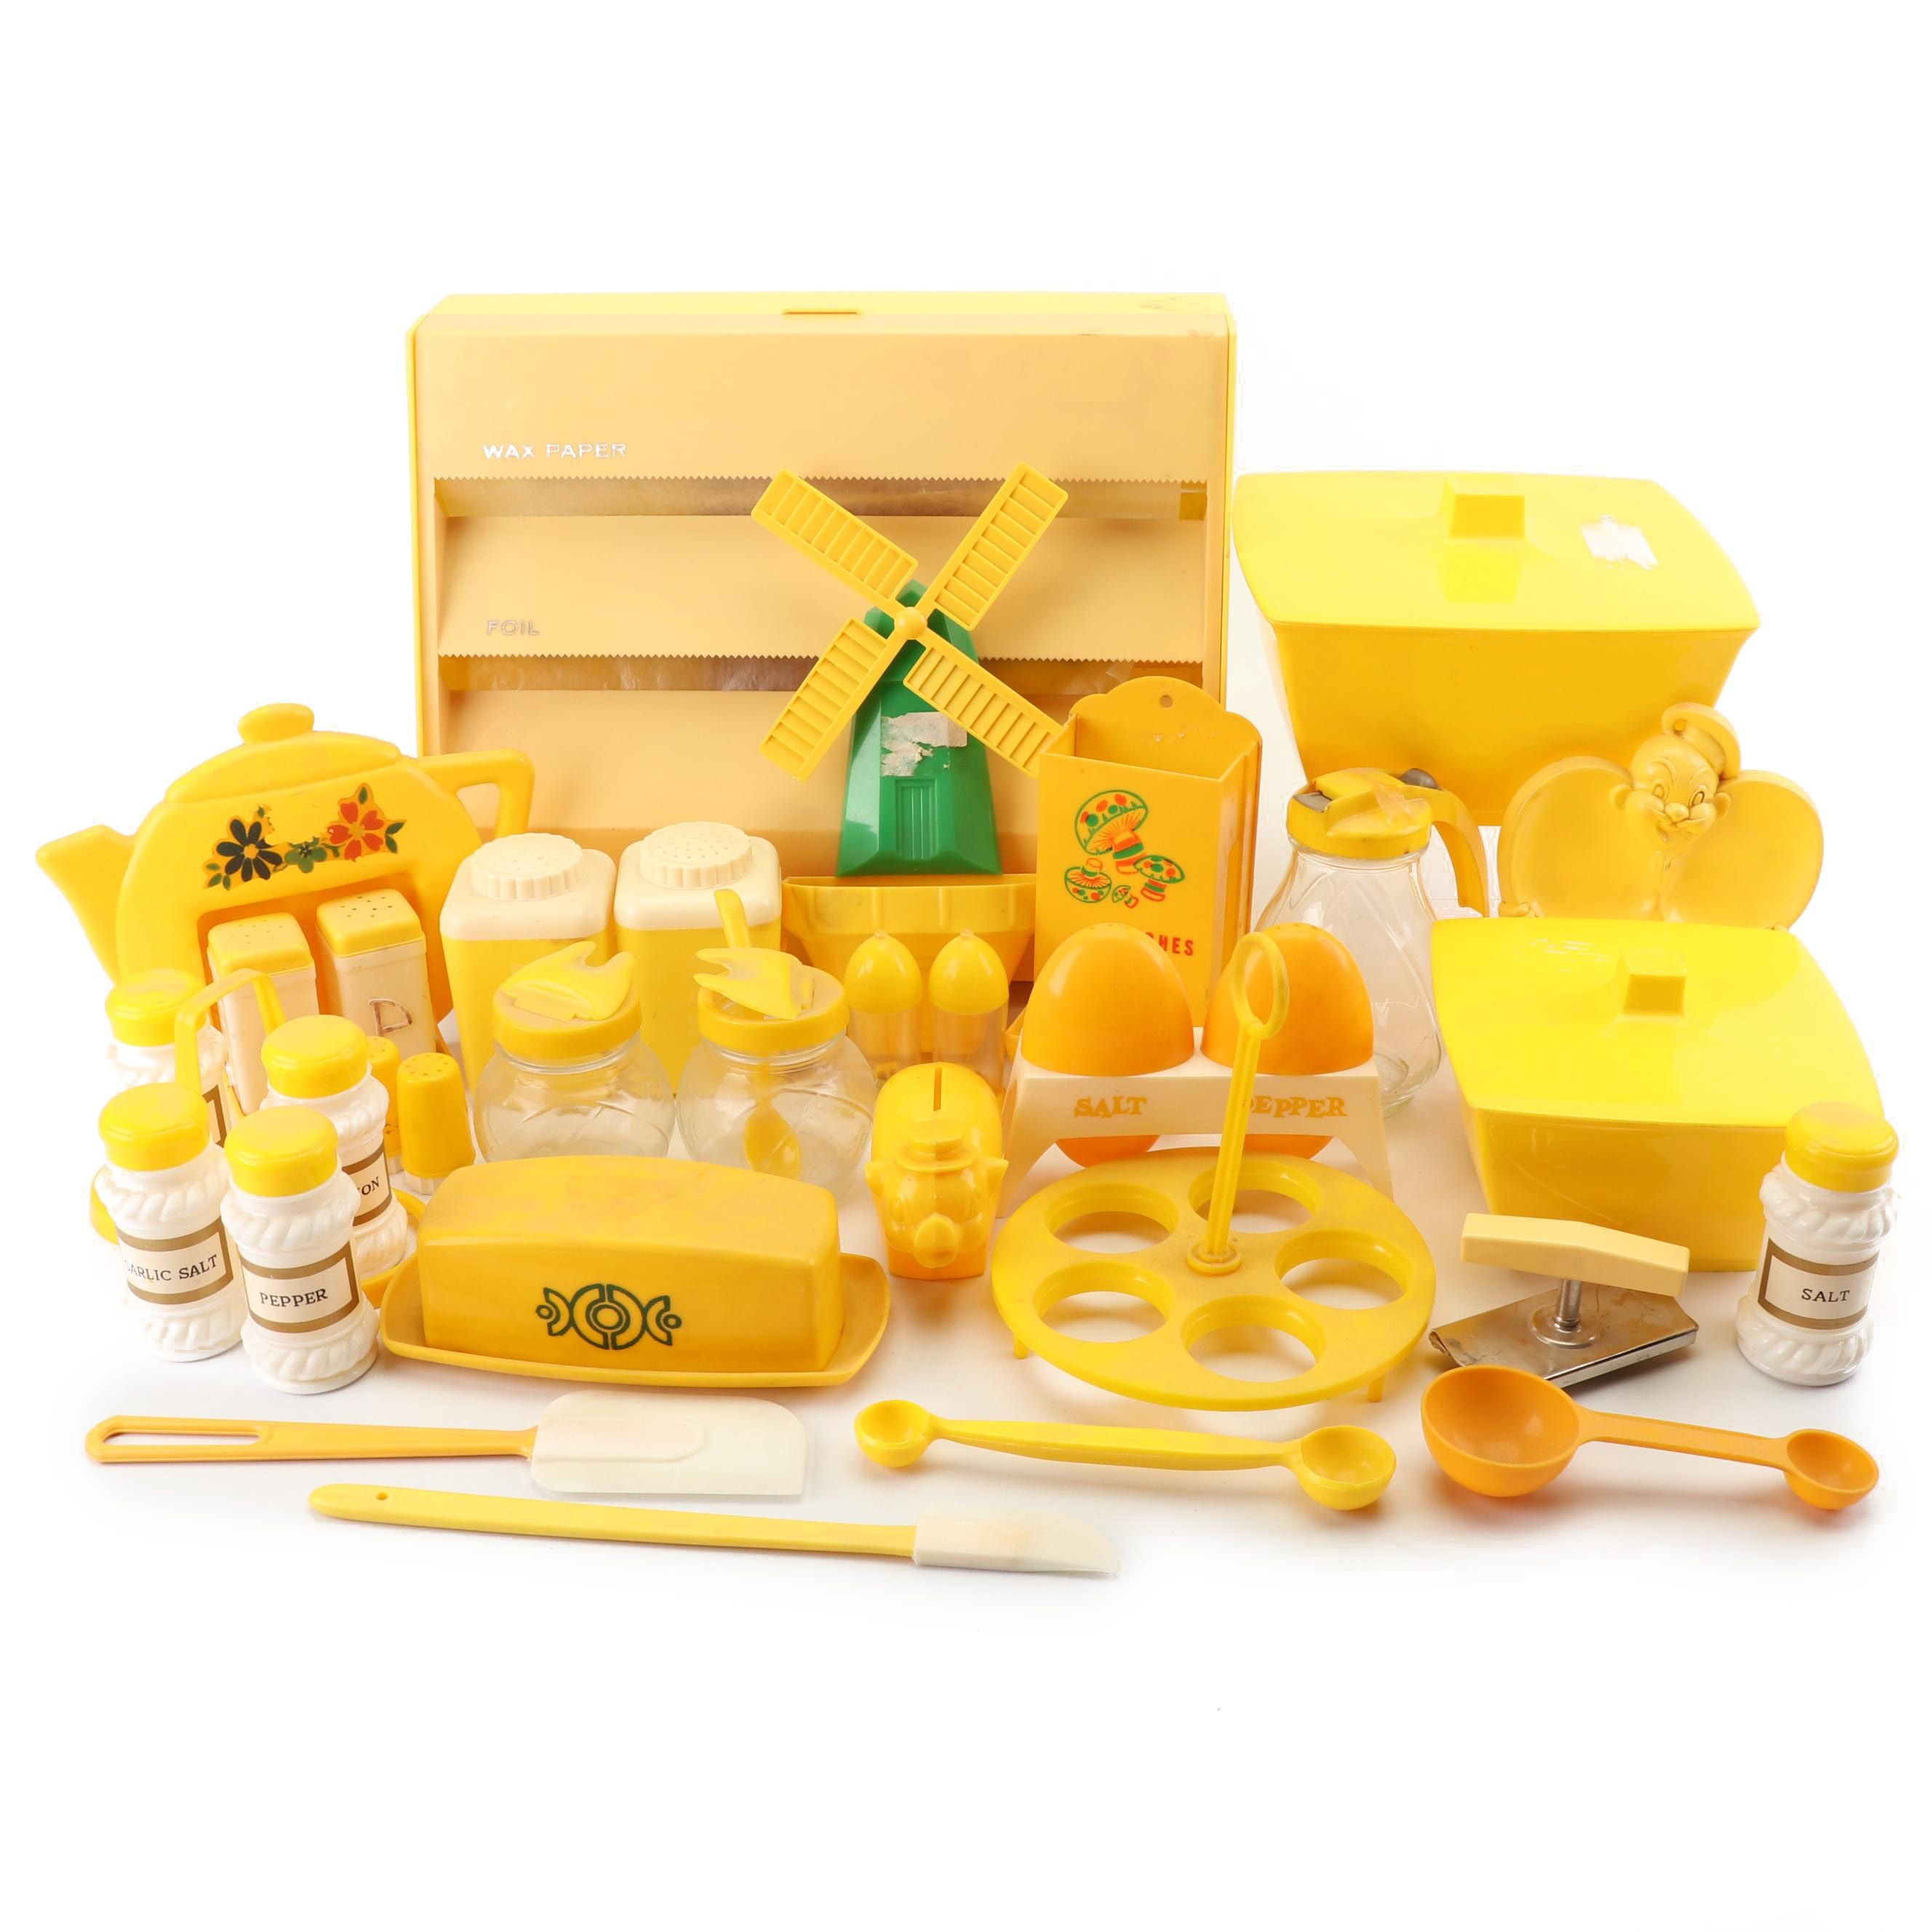 Yellow Plastic Kitchen and Table Accessories, Mid-Century